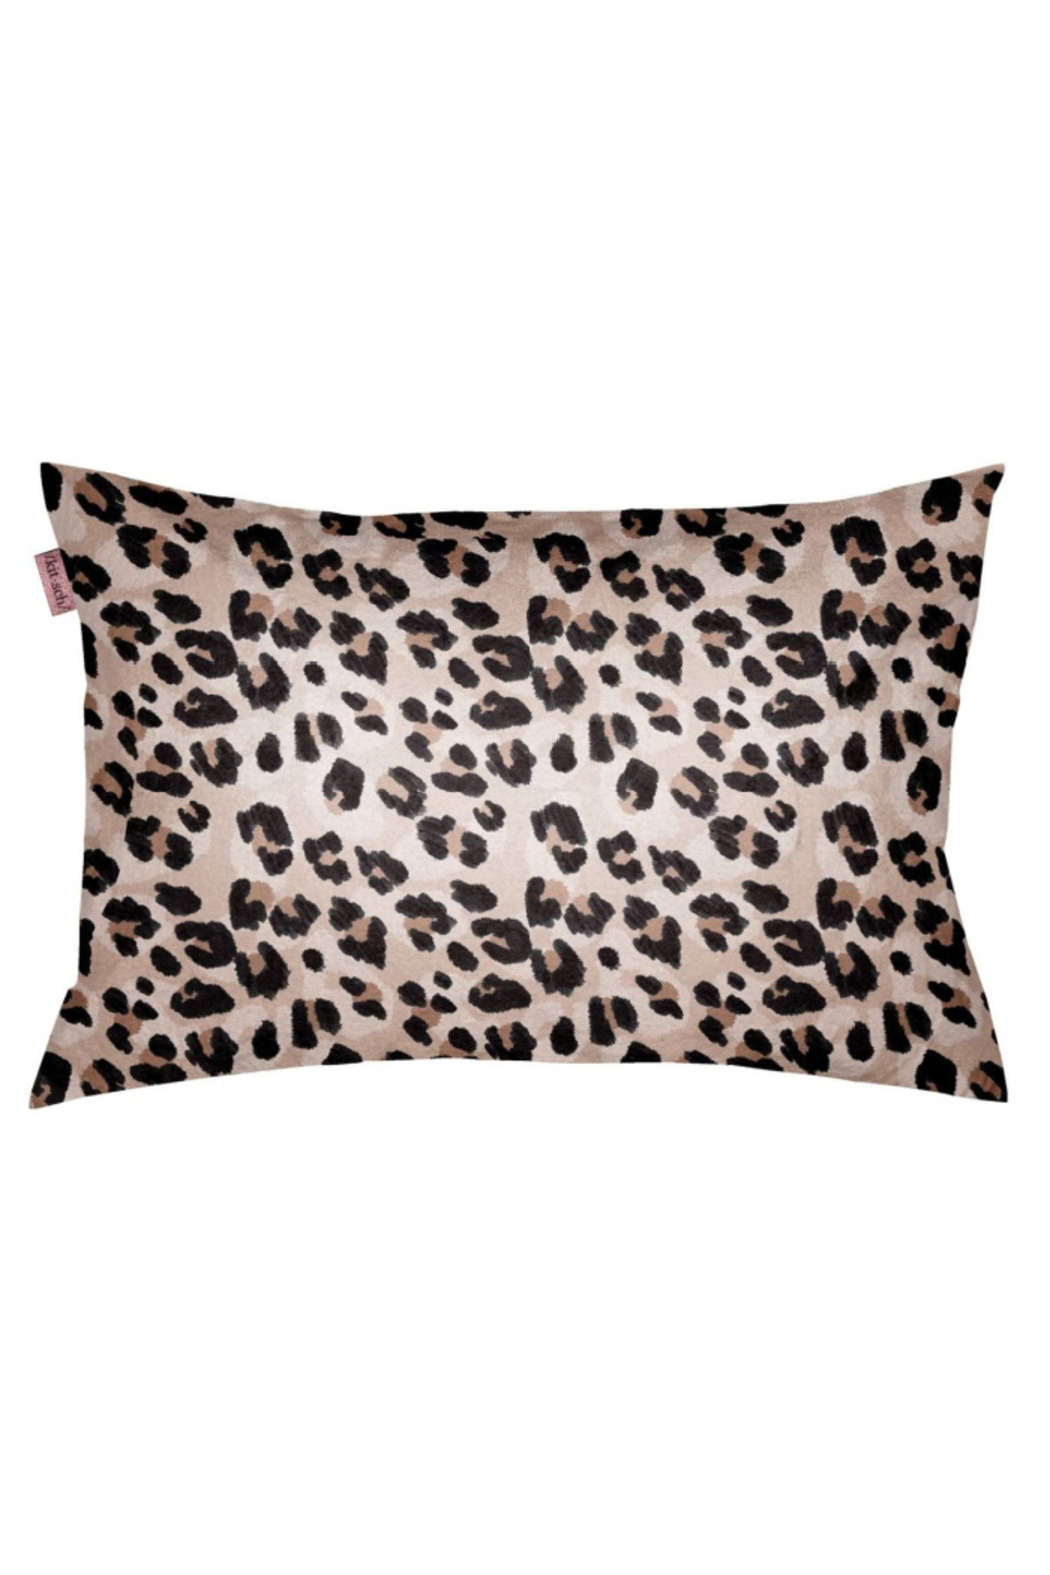 Kitsch TOWEL PILLOW COVER - Front Full Image